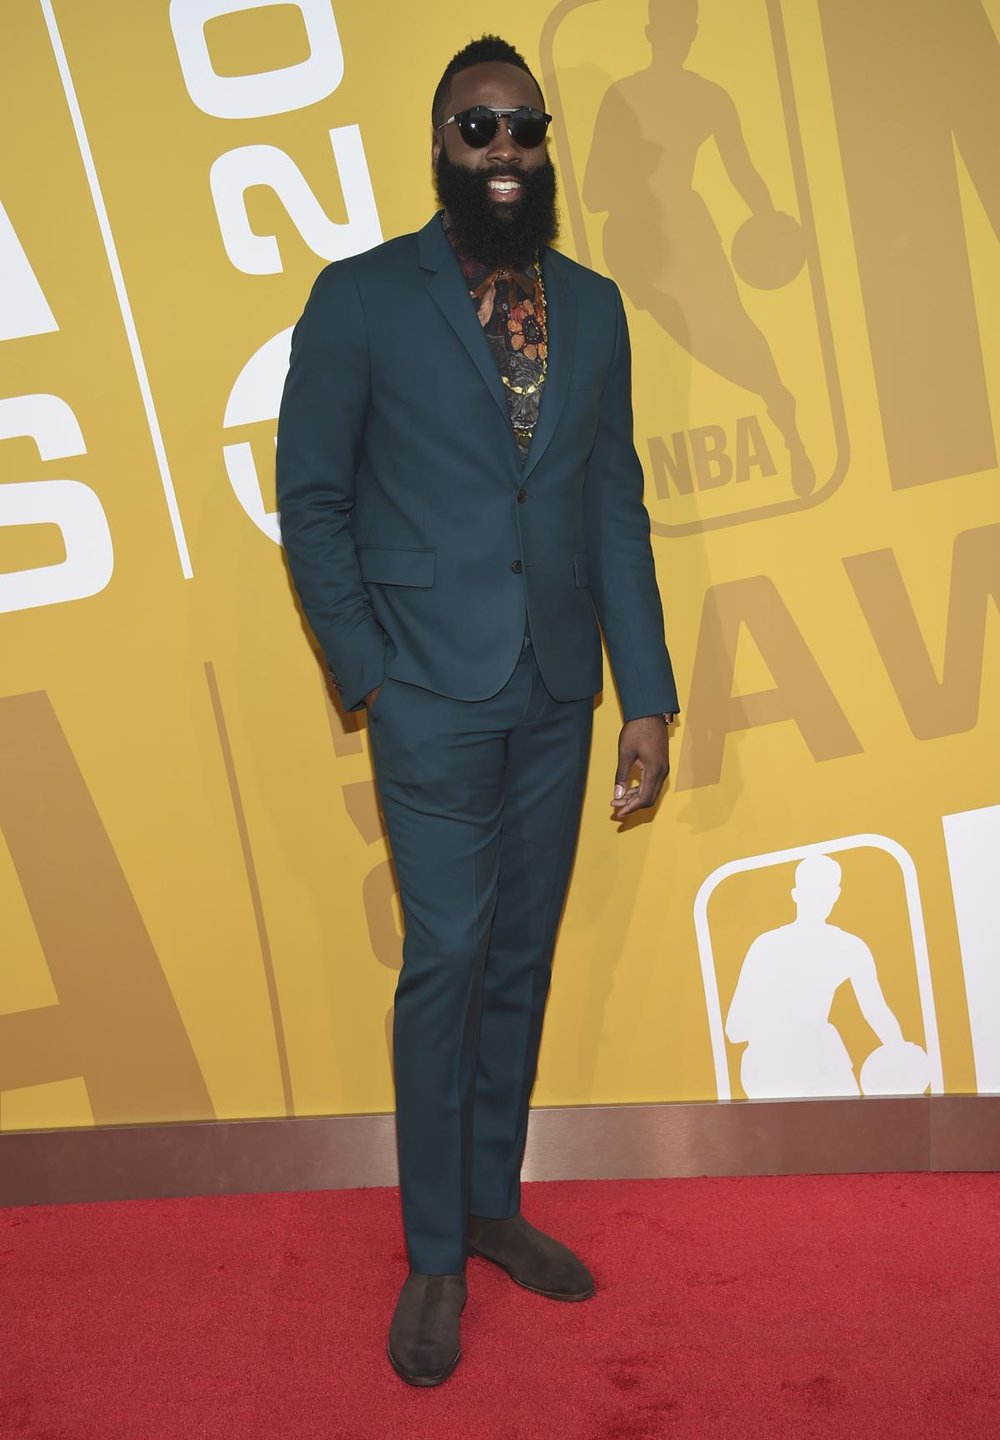 NBA All-Star James Harden